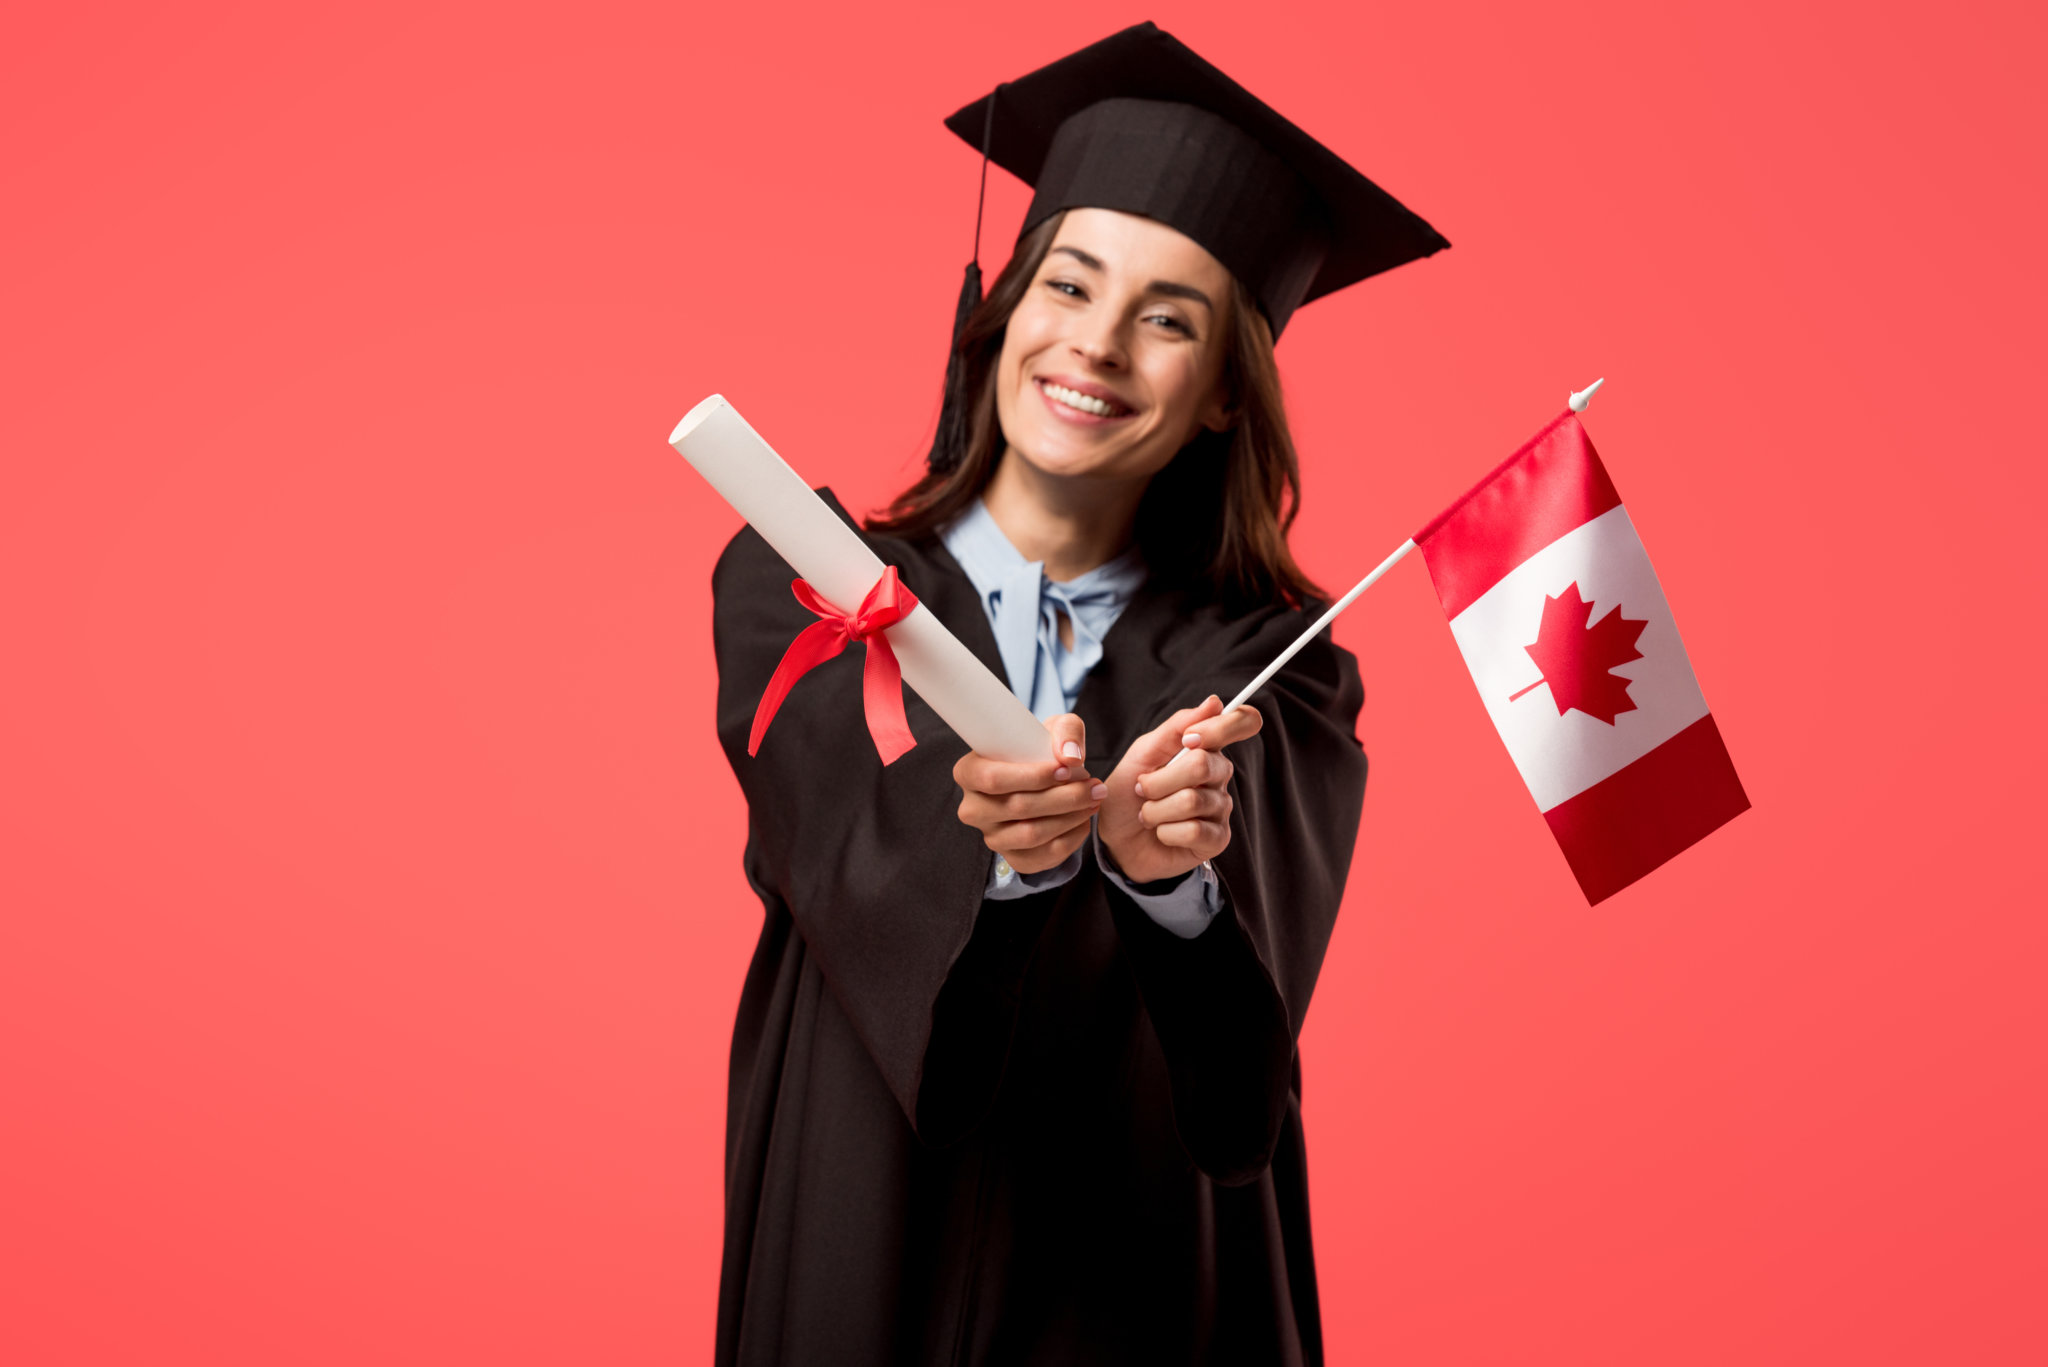 From far and wide oh Canada, we travel to study in thee